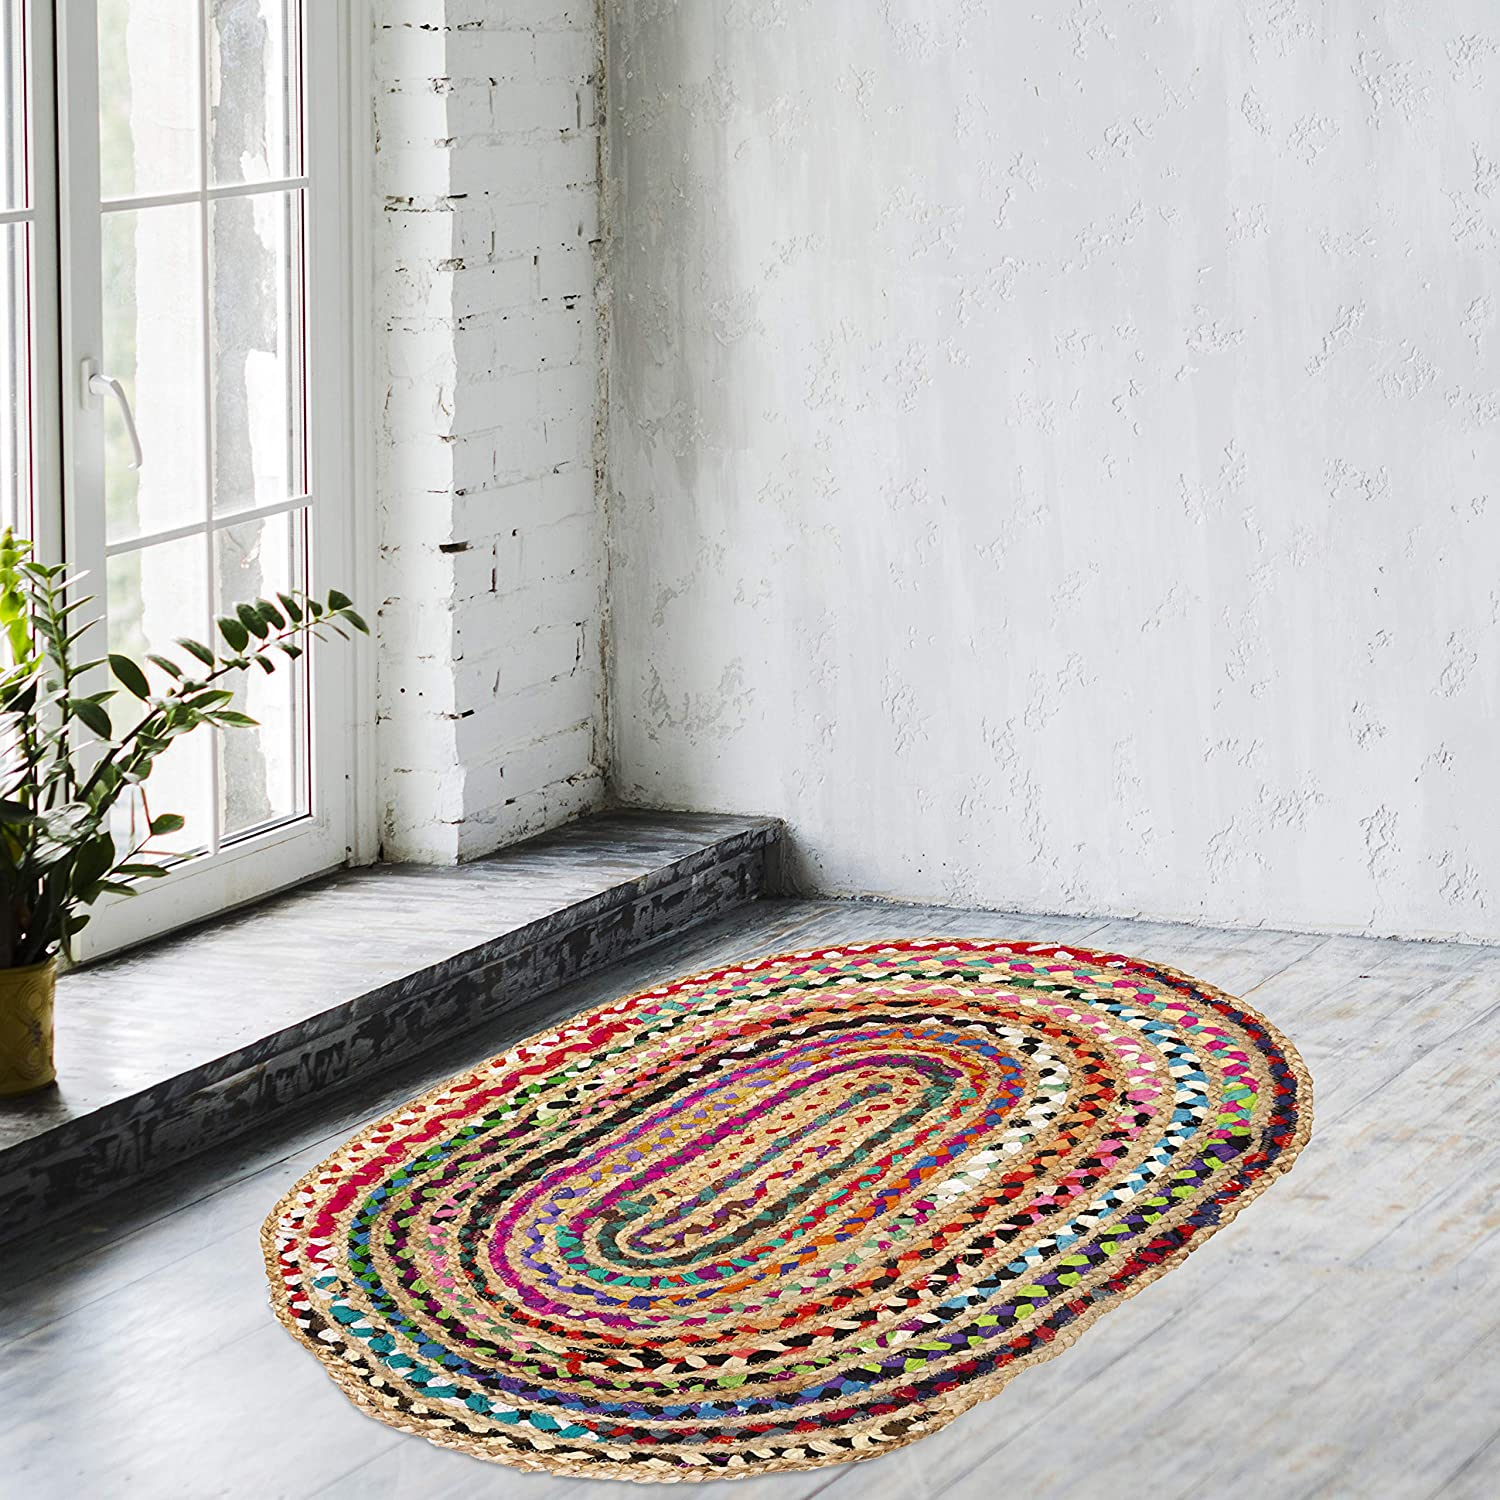 Eleet Reversible Jute & Cotton Area Rug - Multicolor Hand Woven Braided Rug Rag, Colors May Vary (2x3 Feet Cotton+Jute (Oval))